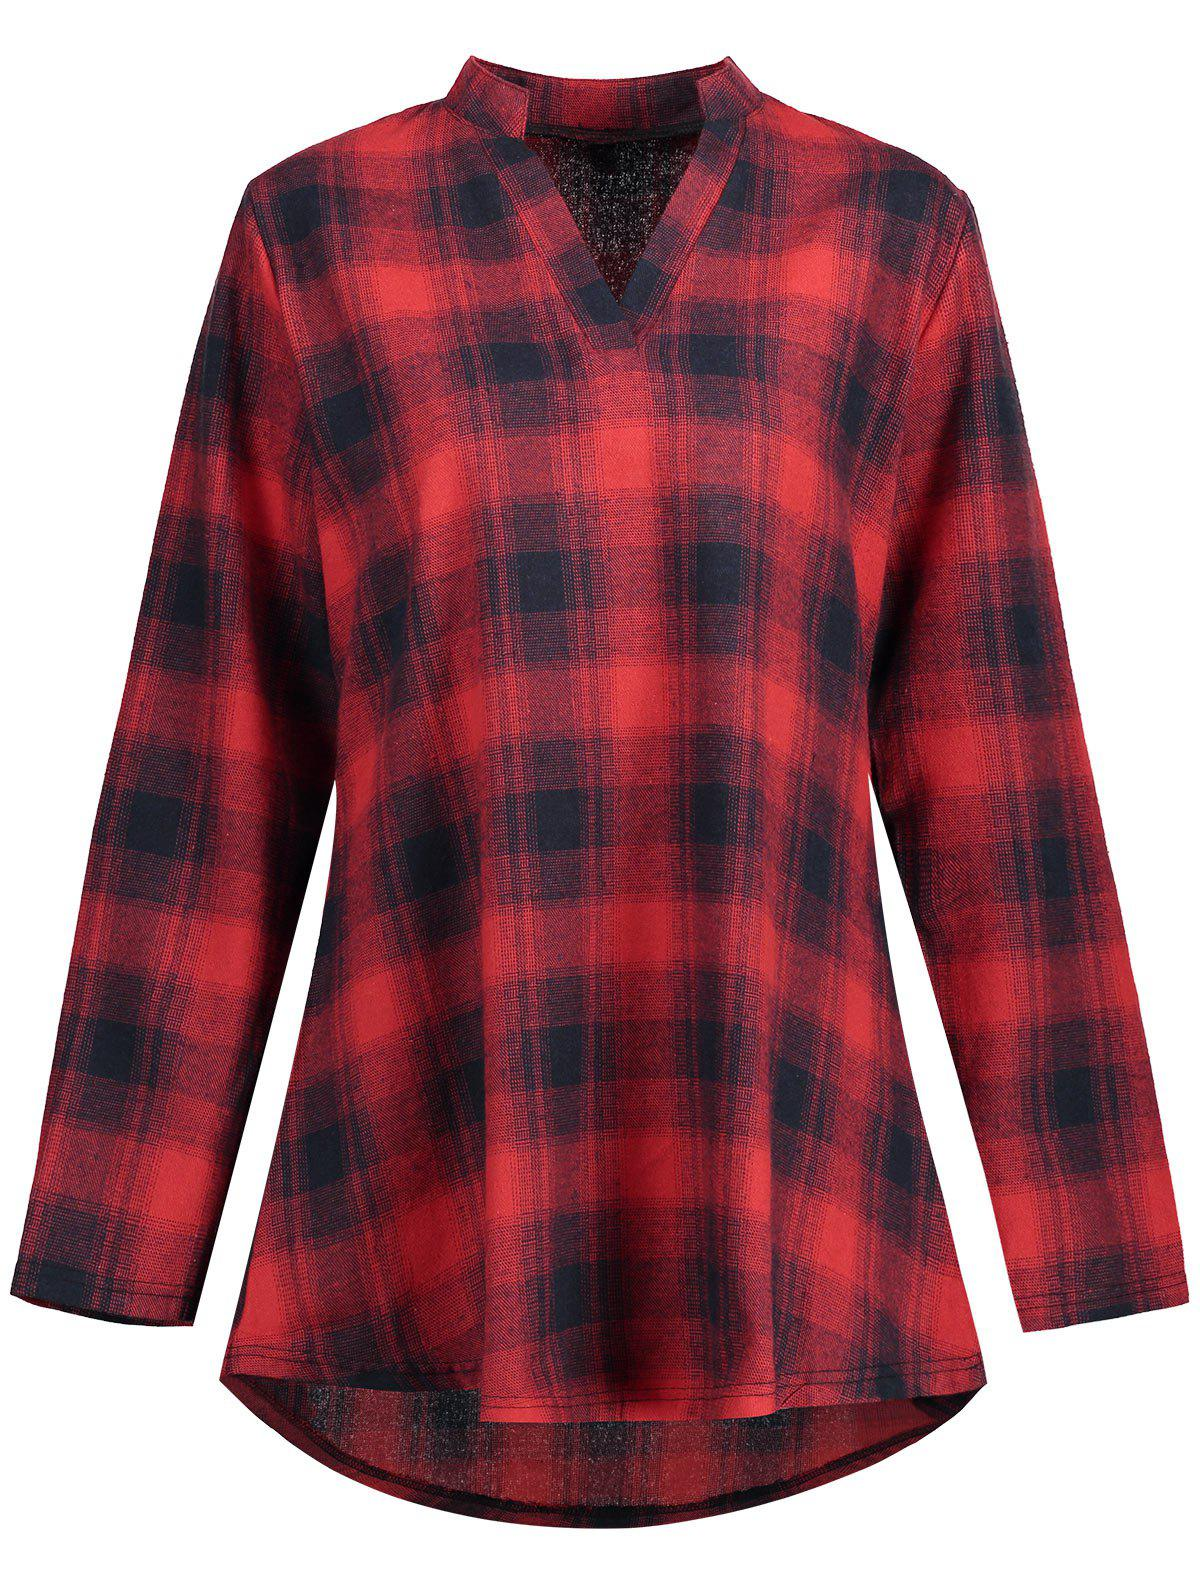 High Low Plaid Plus Size ShirtWOMEN<br><br>Size: 5XL; Color: RED; Material: Polyester; Shirt Length: Long; Sleeve Length: Full; Collar: V-Neck; Style: Fashion; Season: Fall,Spring; Pattern Type: Plaid; Weight: 0.2950kg; Package Contents: 1 x Shirt;